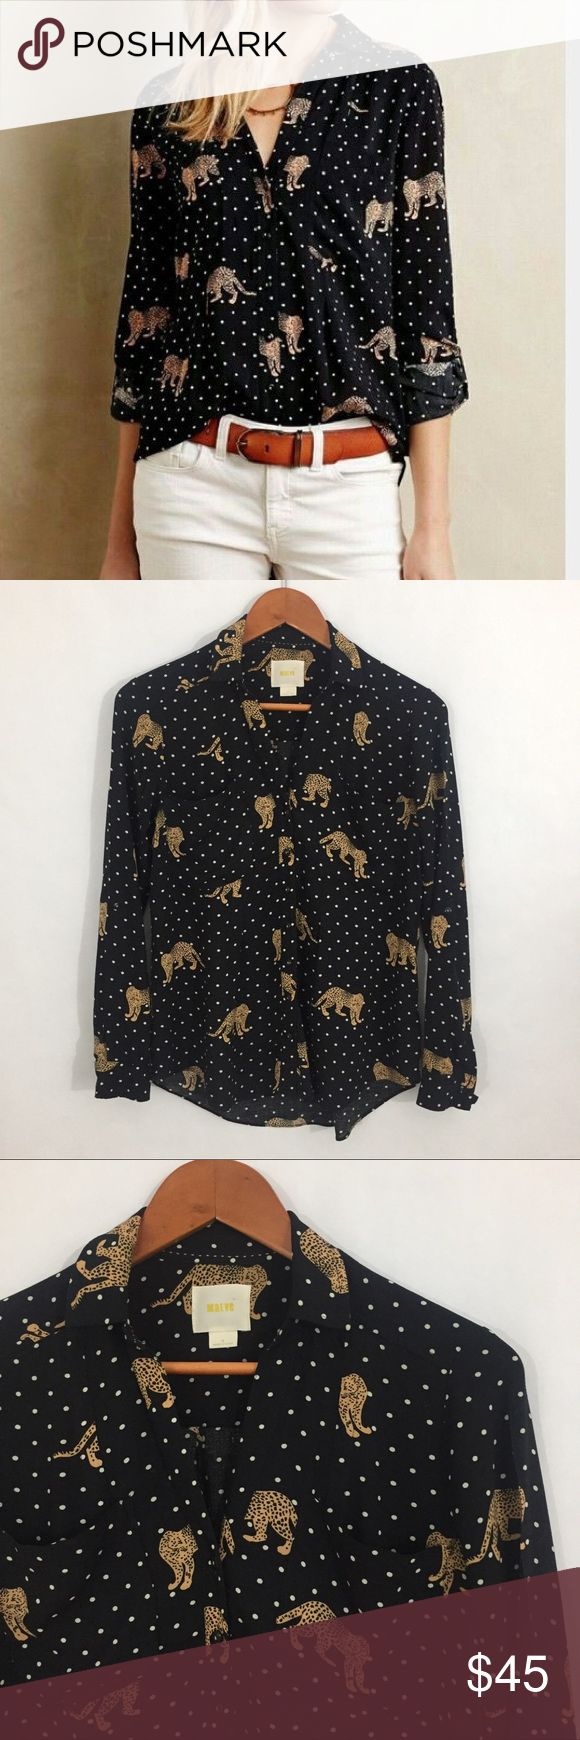 Maeve leopard blouse Excellent condition.  Sleeves can be rolled and buttoned.  Fits true to size.  Reasonable offers welcome.  No trades.  20% off 2 or more listings from my closet. Anthropologie Tops Blouses